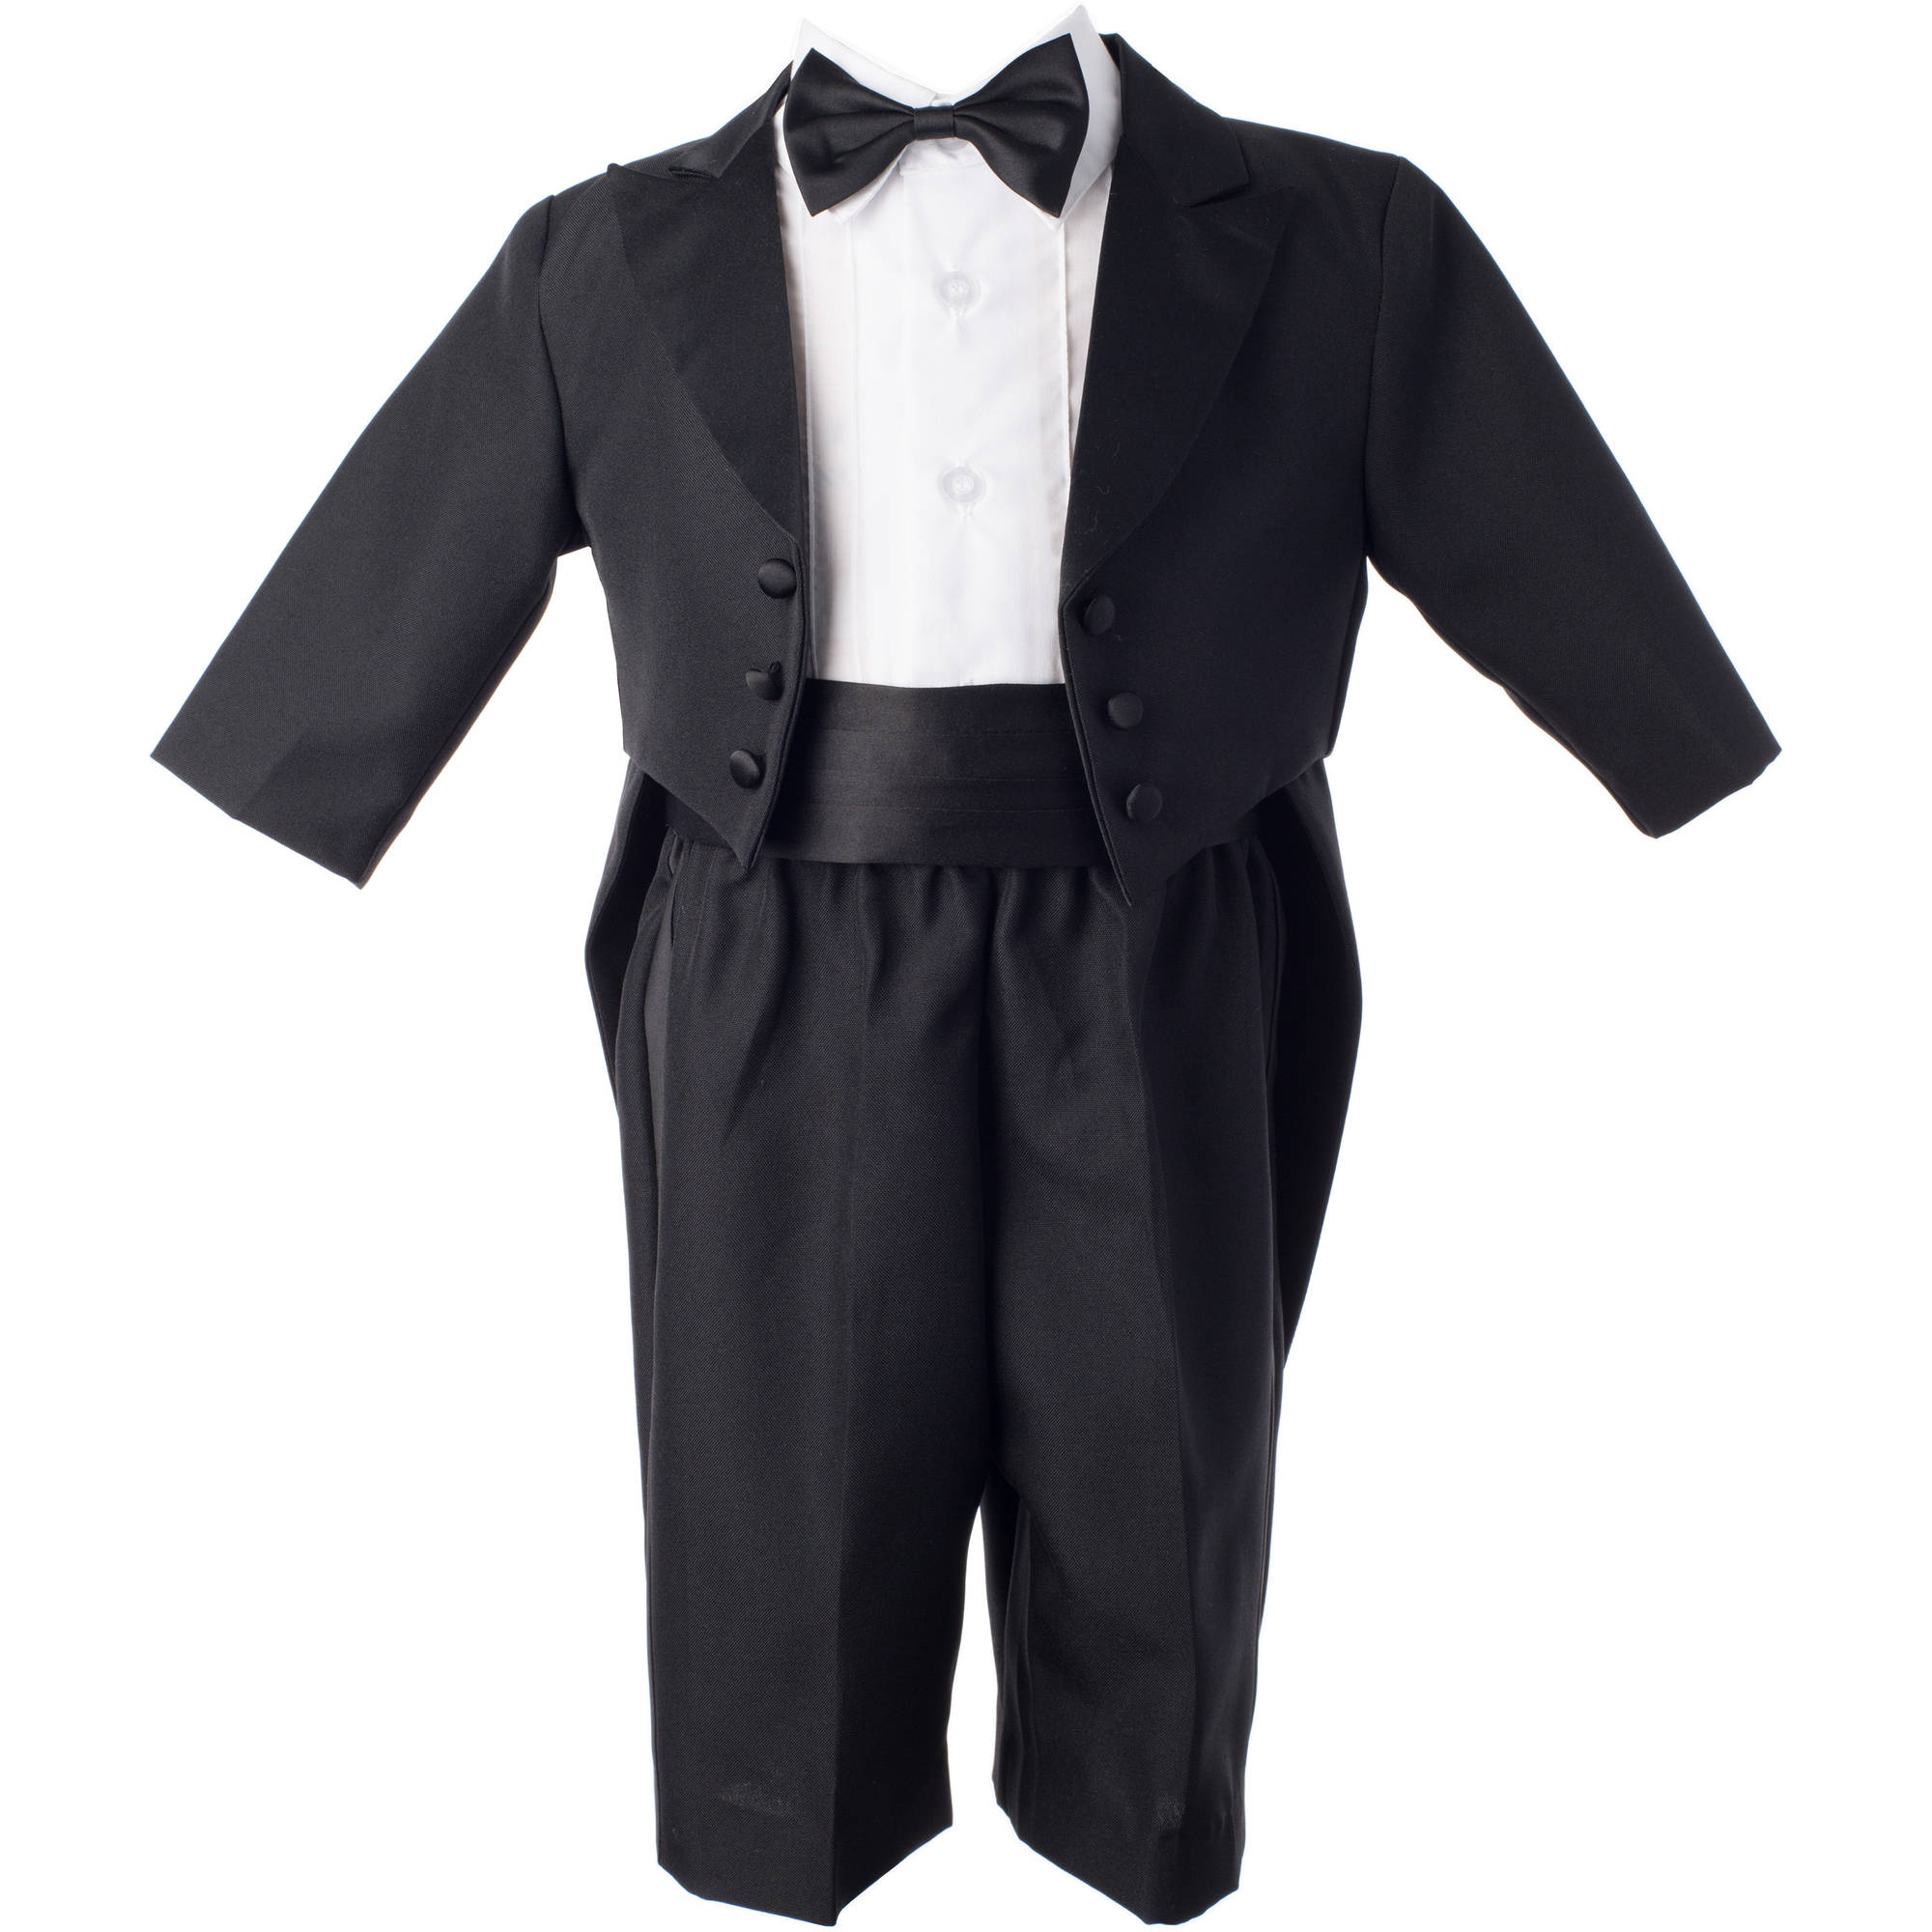 christening baptism newborn baby boy special occasion real 4 pc tuxedo outfit suit w tails